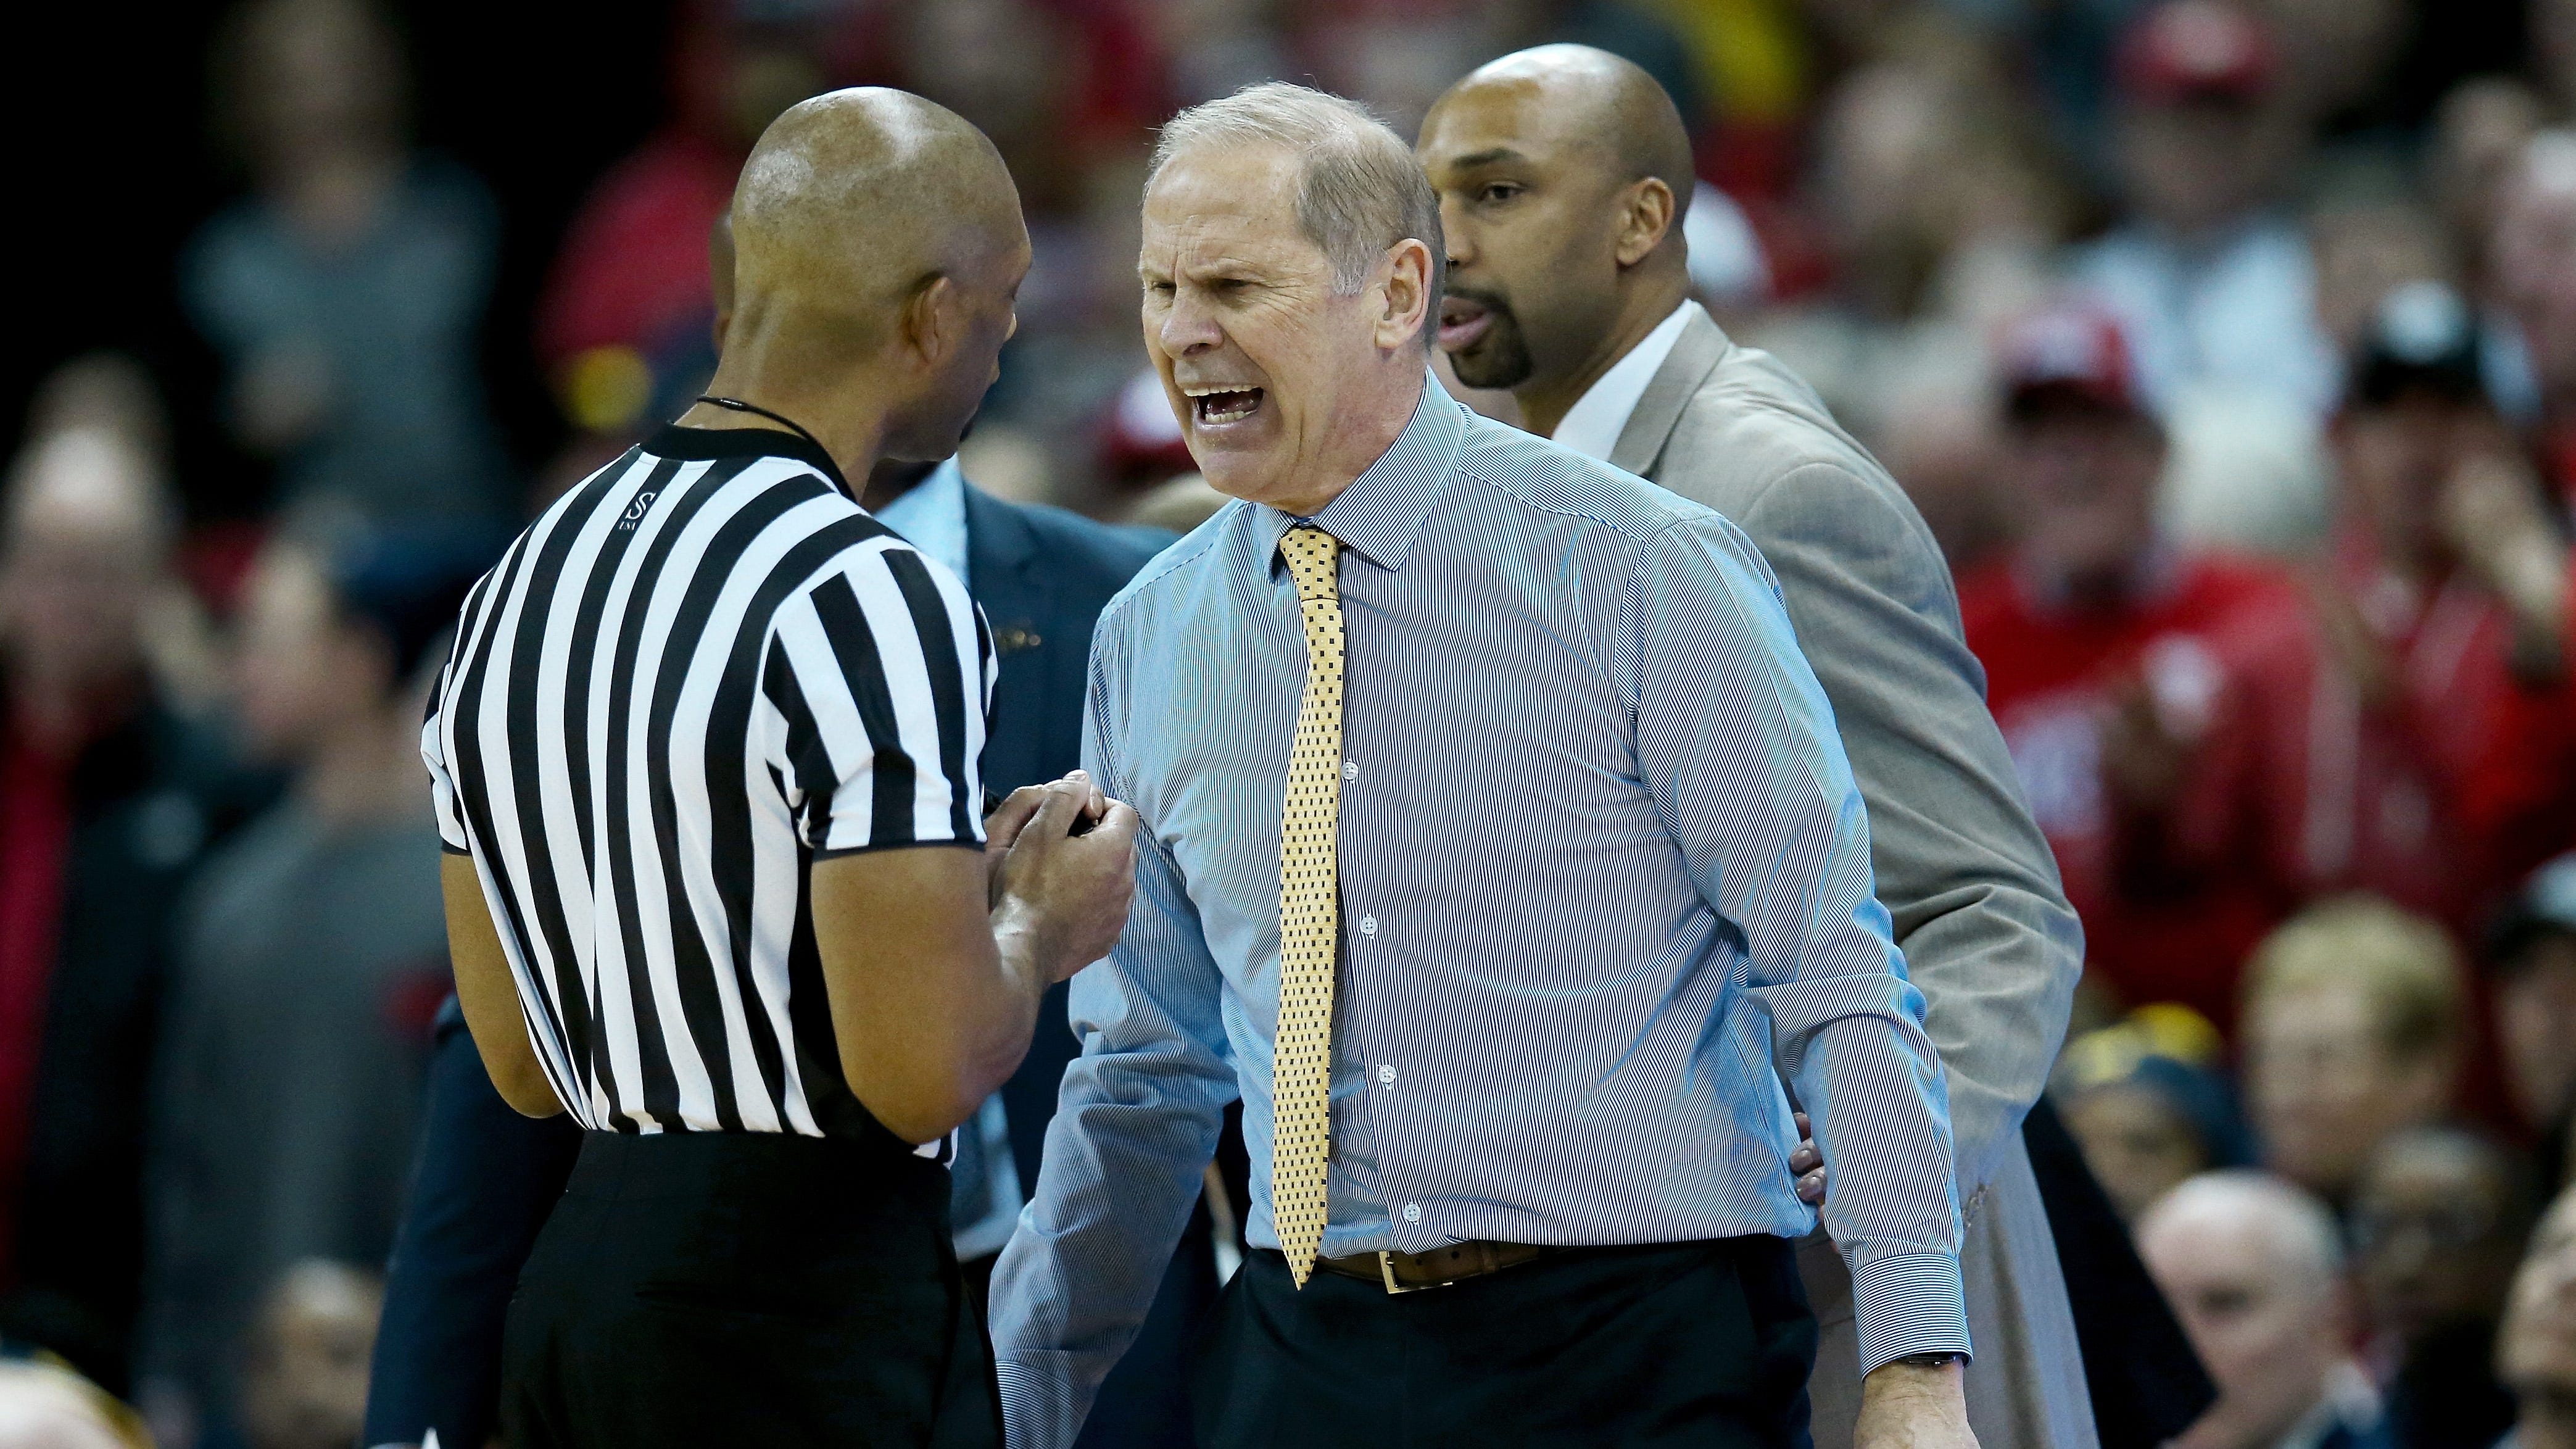 Michigan's John Beilein admits officials were correct on foul call